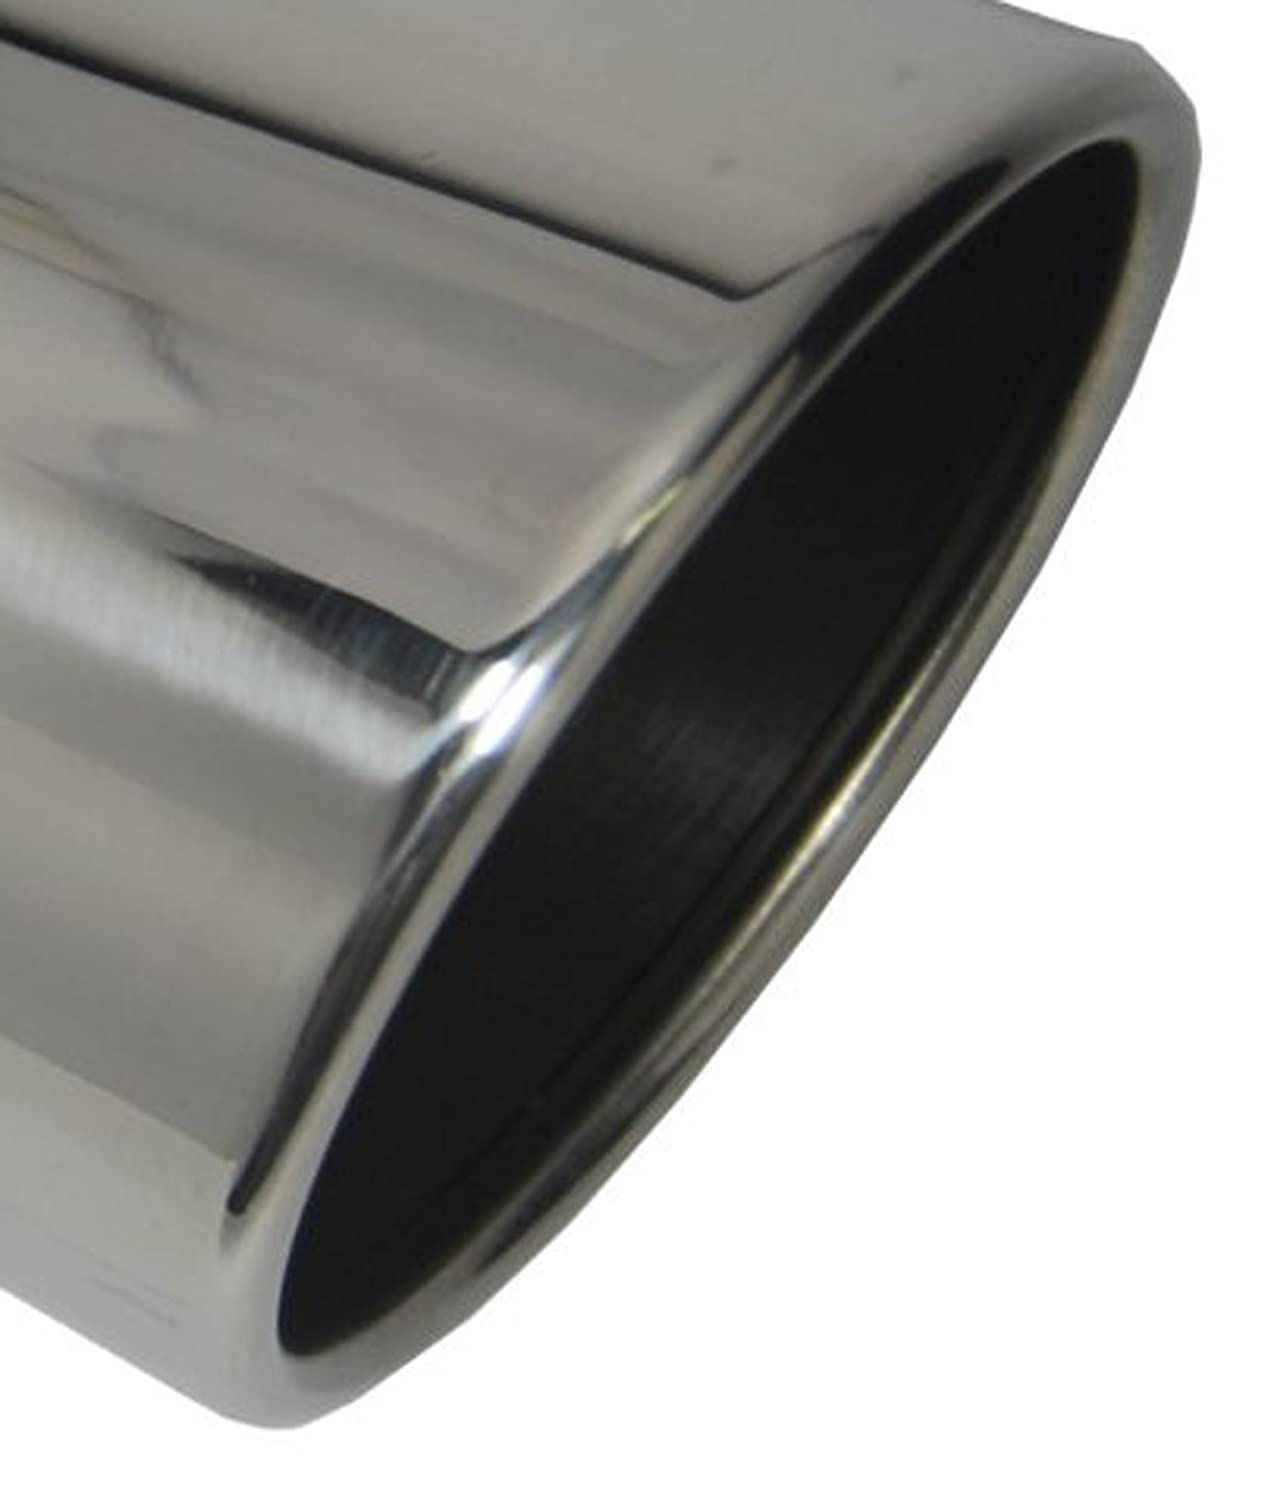 Wesdon Exhaust Tip W60012-400-BOSS-RS 4.00 Inch Inlet 6.00 Inch Dia 12.00 In Long Rolled Slant Bolt On Stainless Steel Mirror Polished Exhaust Tip